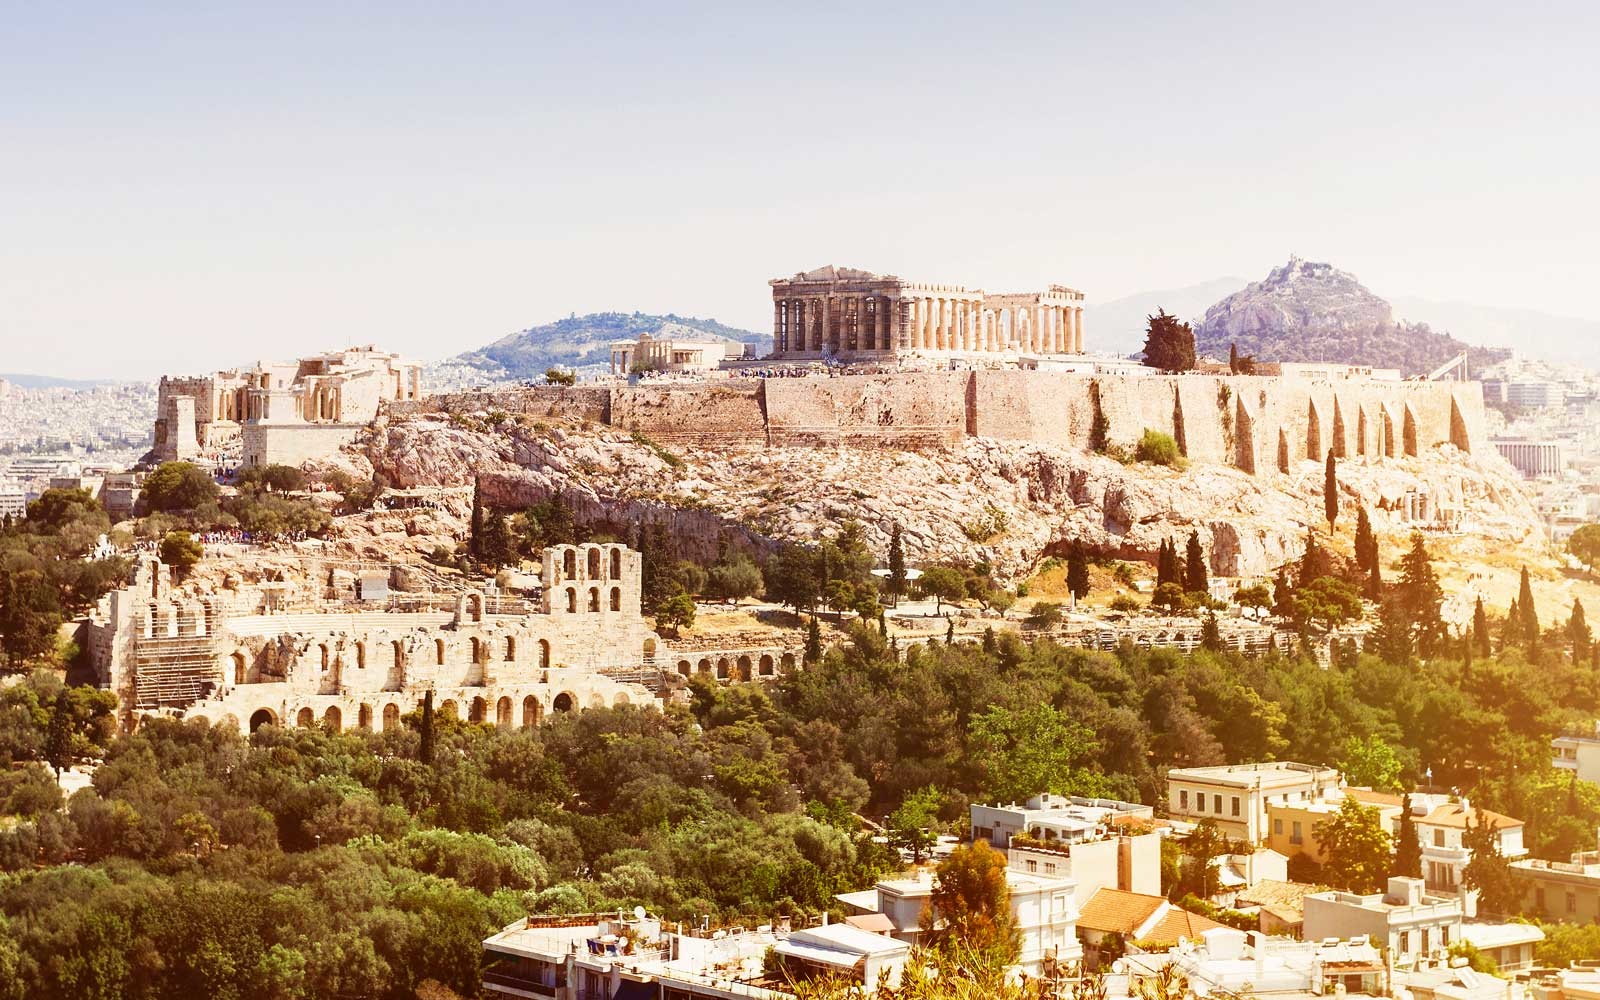 View of Acropolis, Athens, Greece